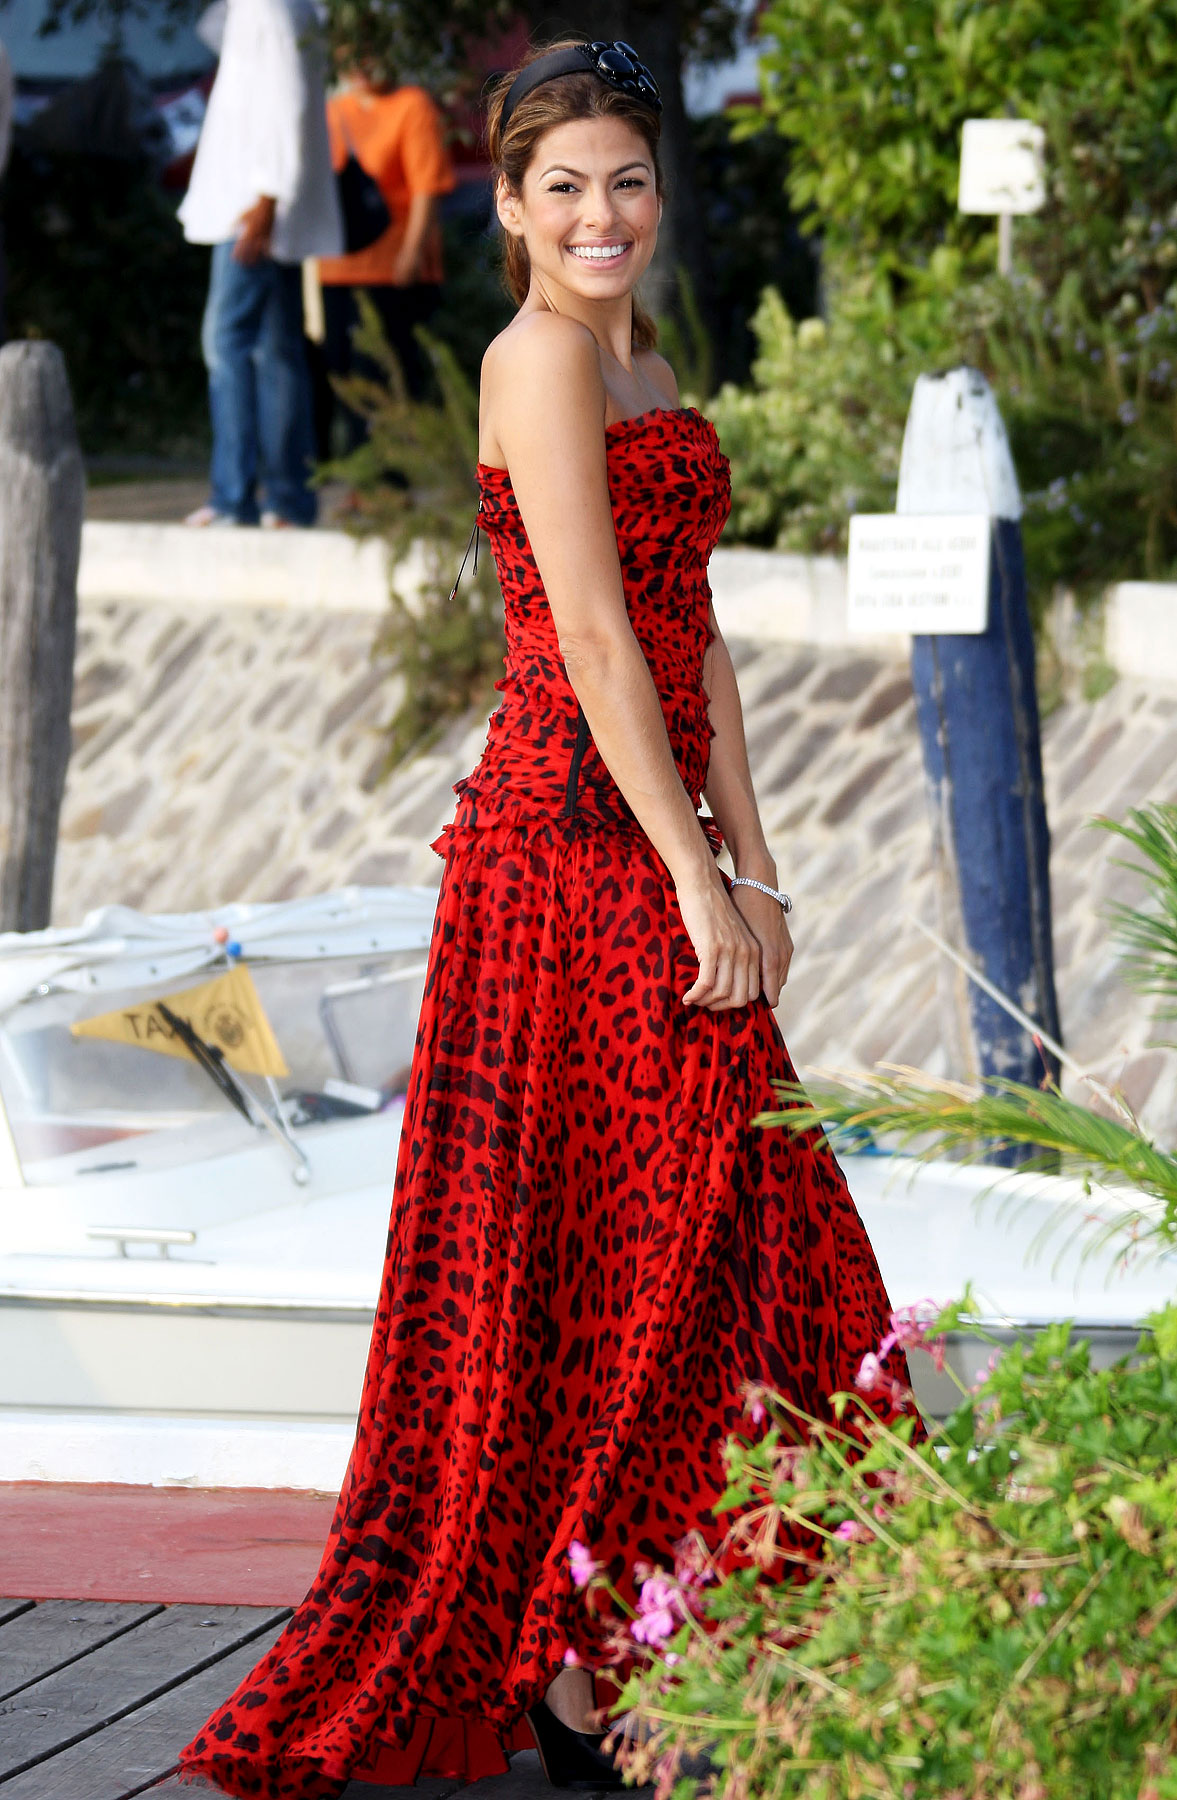 PHOTO GALLERY: Eva Mendes at the Venice Film Fest